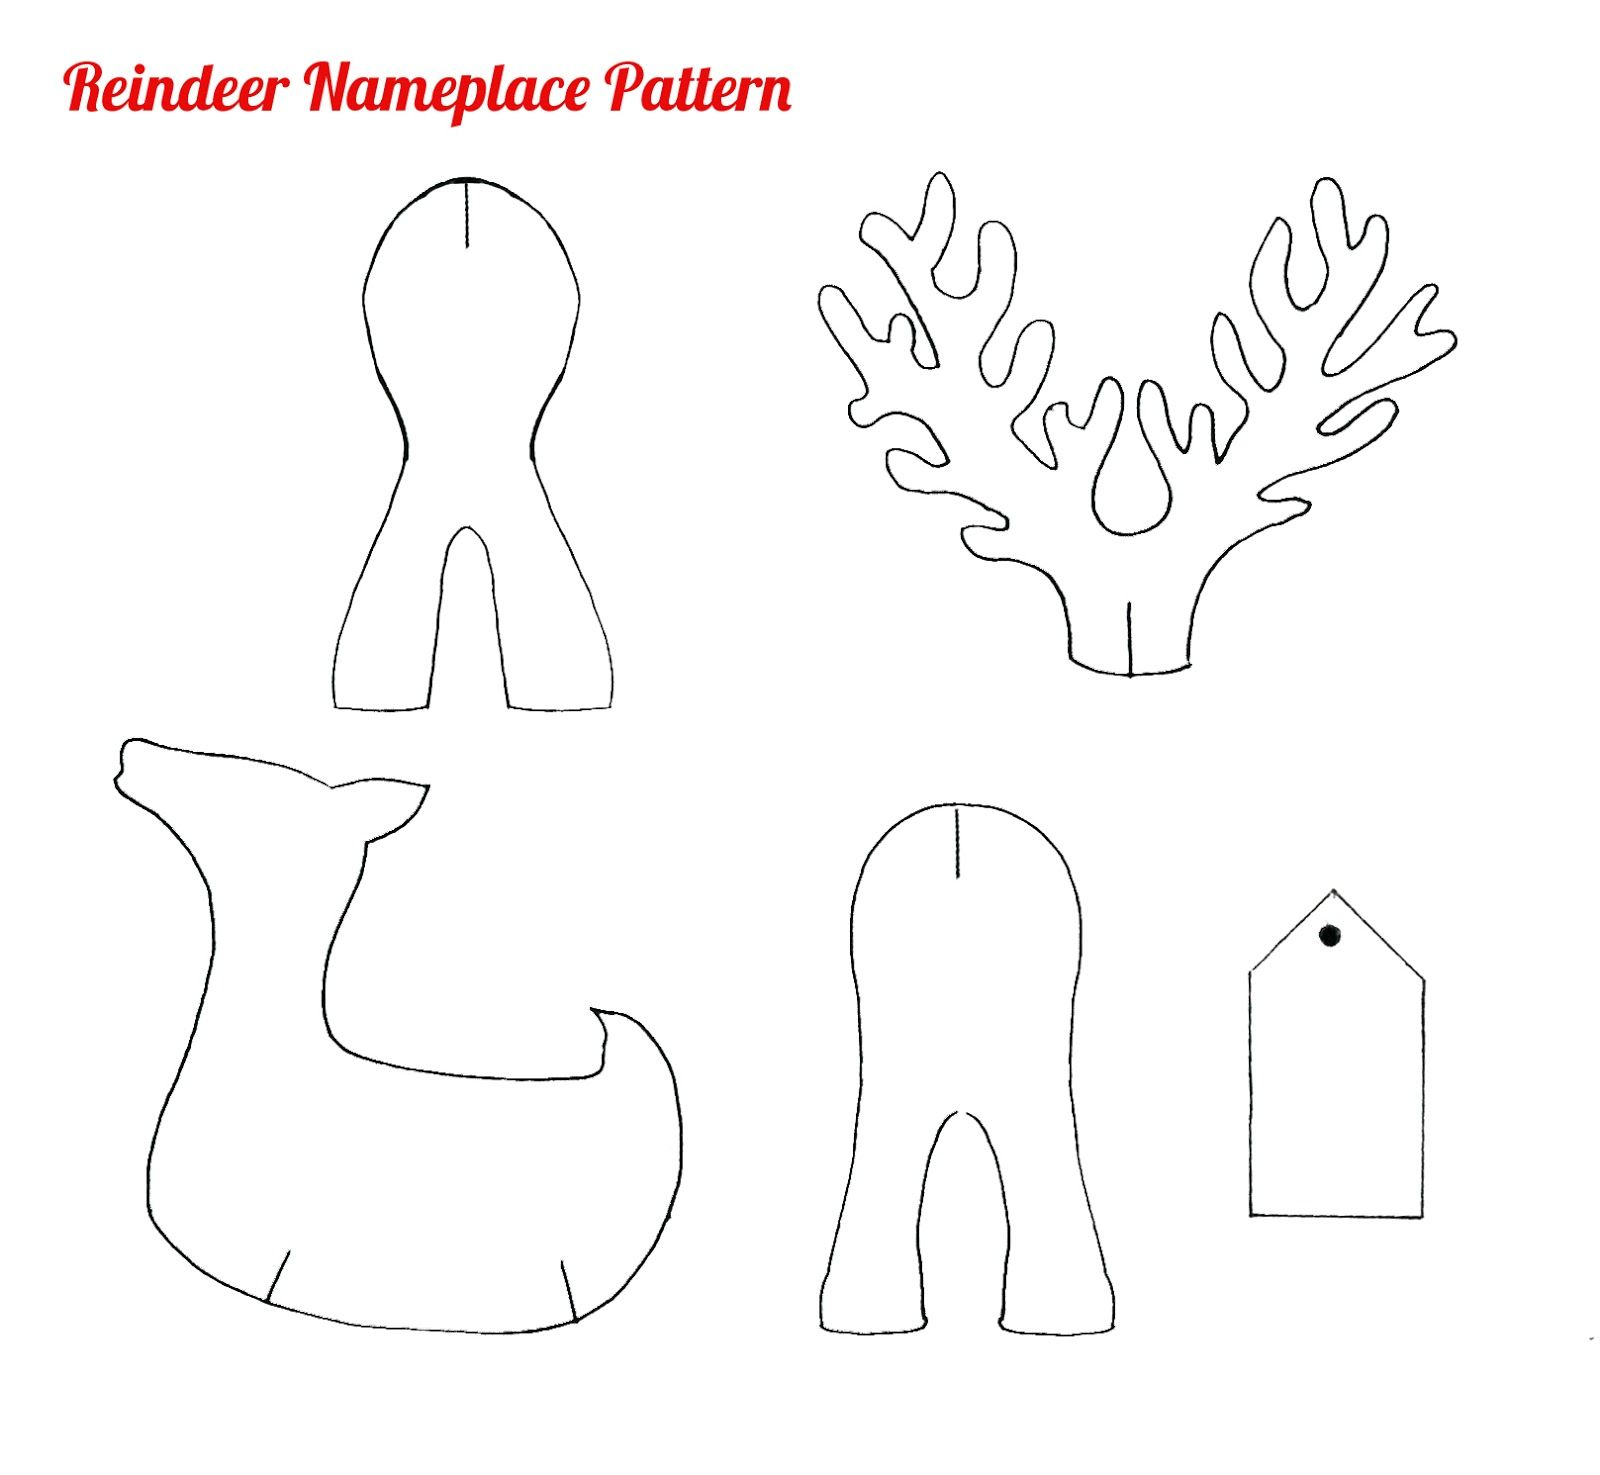 paper reindeer pattern christmas shapes - Google Search ...